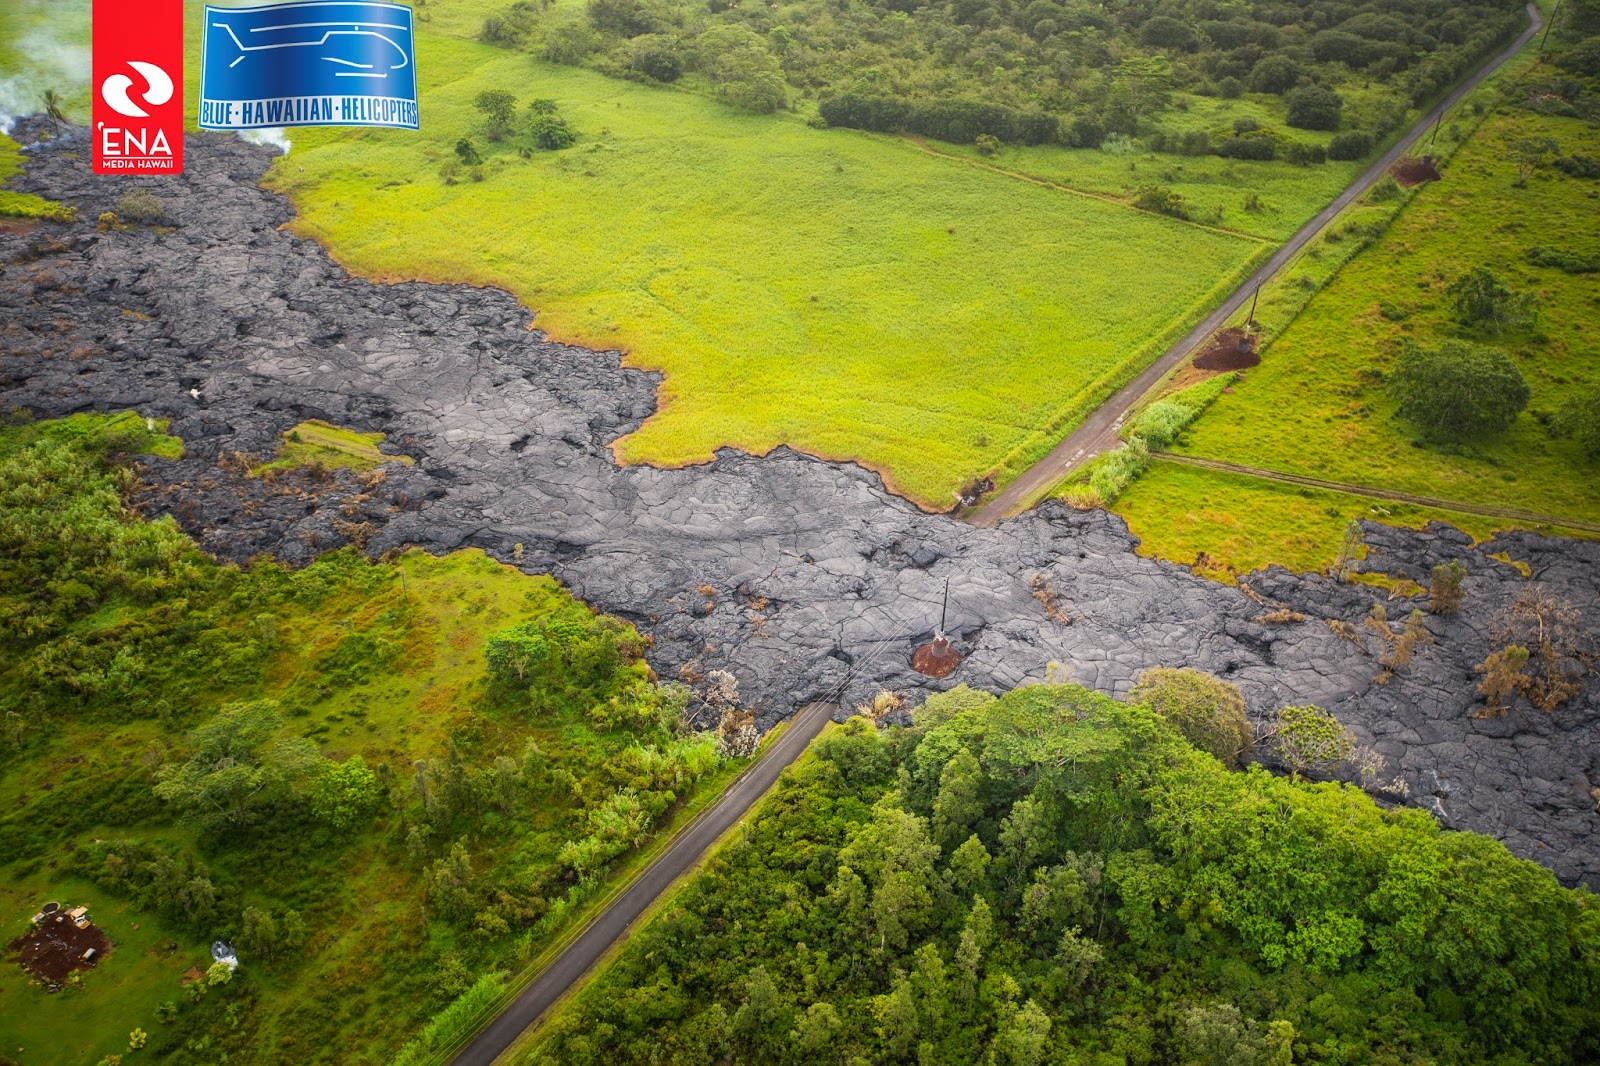 courtesy 'Ena Media Hawai'i/Blue Hawaiian Helicopters